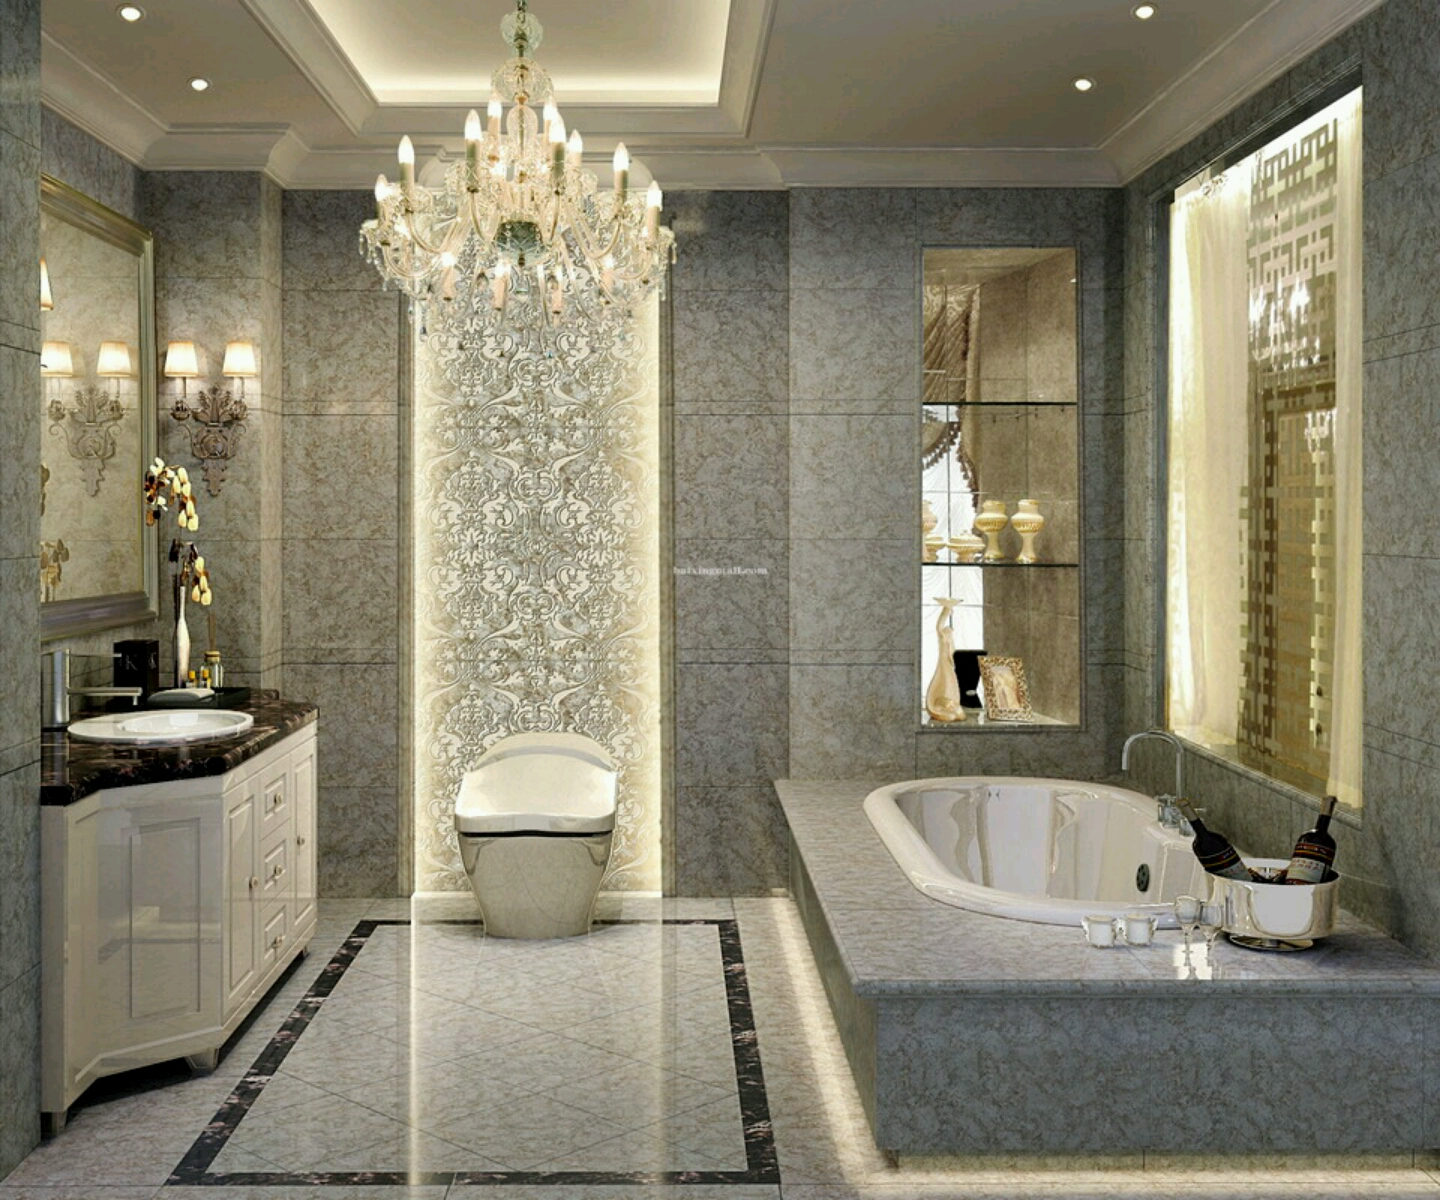 Cool Bathrooms Designs HD Wallpapers 2015  photosforwallpapers 2017